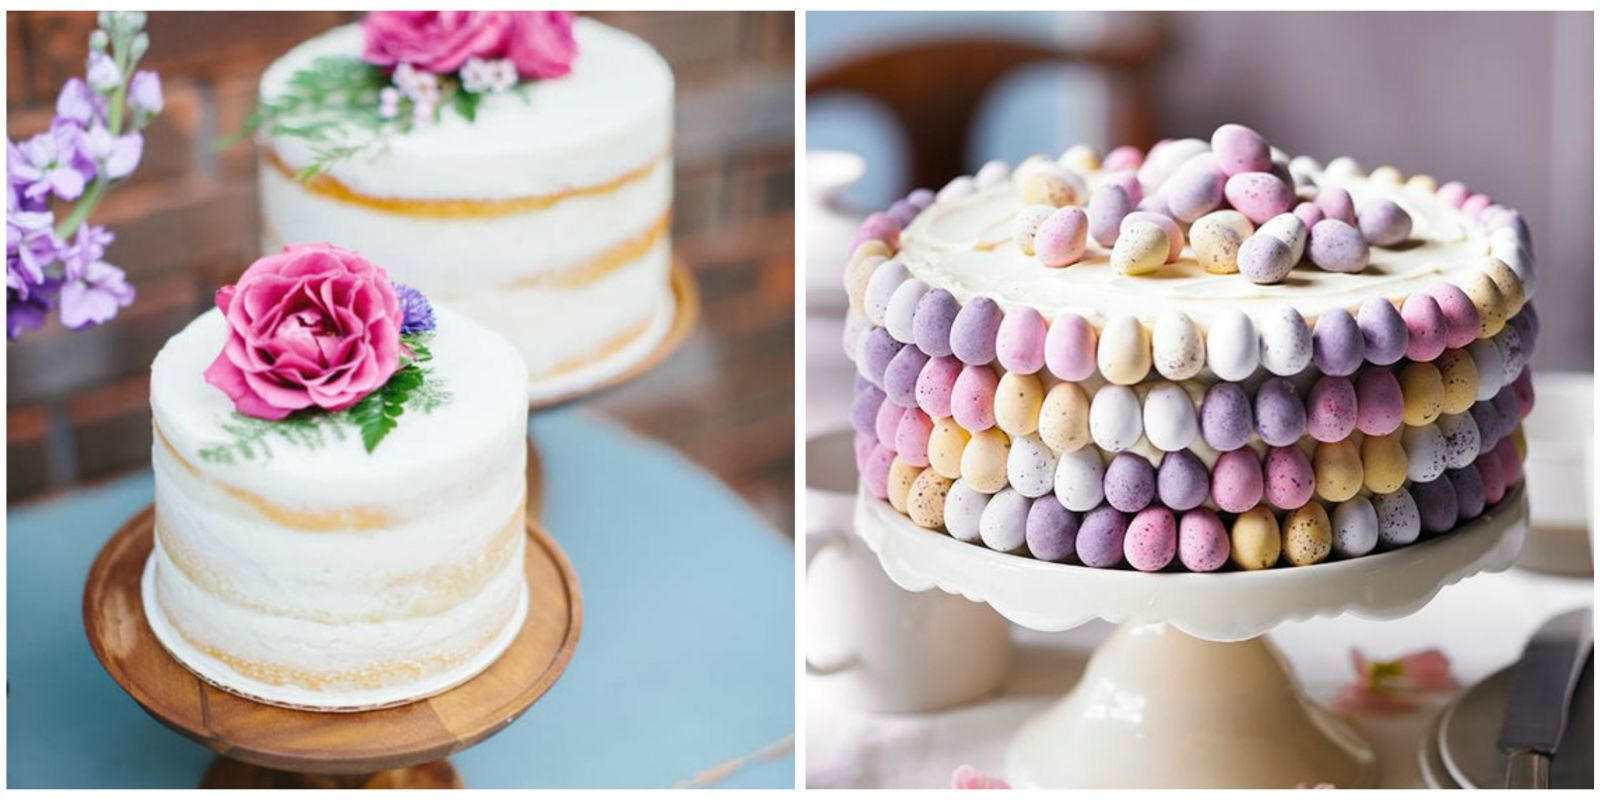 15 Best Easter Cake Ideas How To Decorate A Beautiful